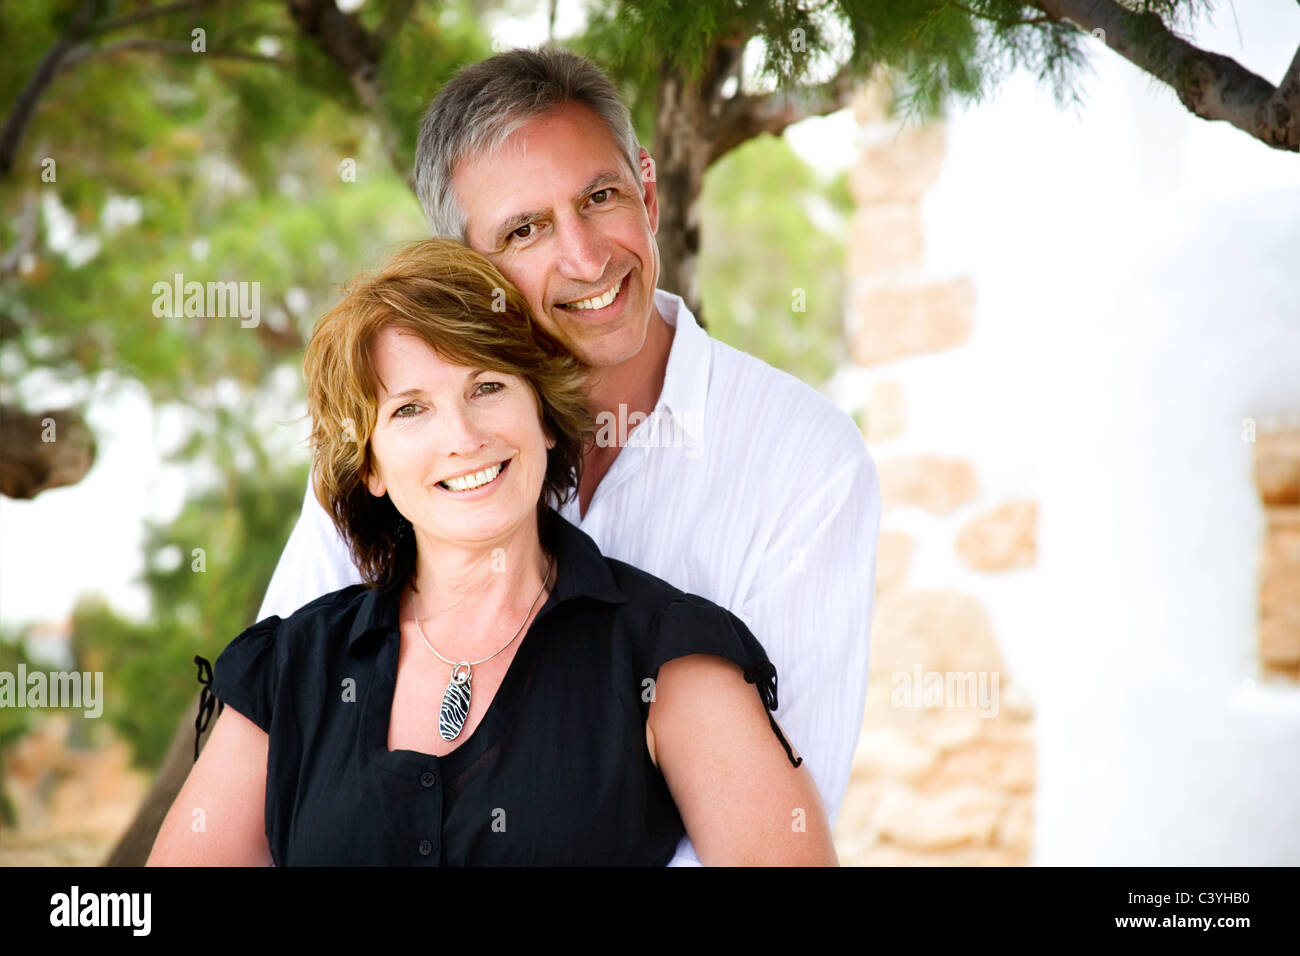 mature couple smiling and